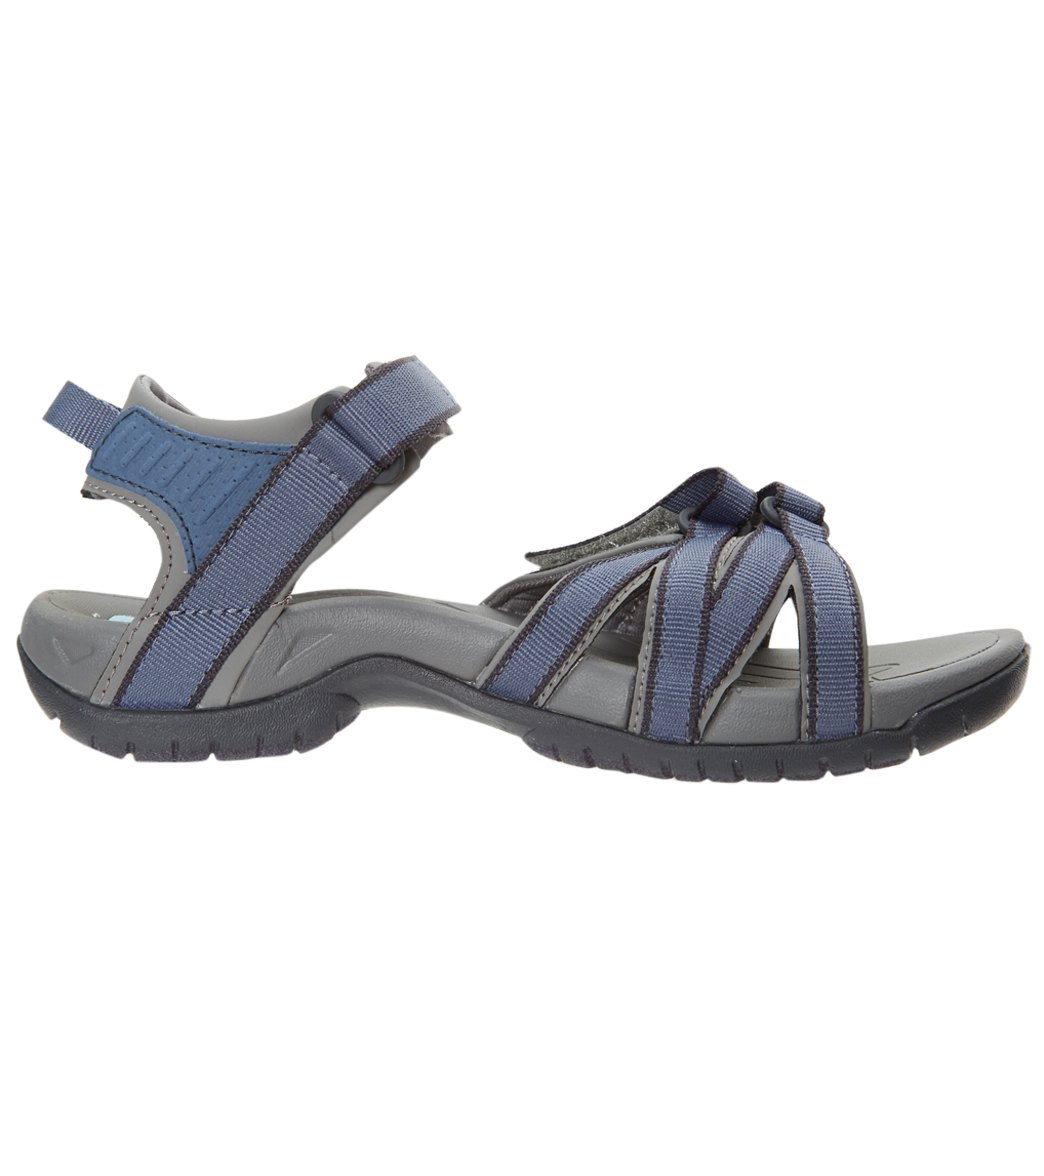 a3b67133087b Teva Women s Tirra Sandal at SwimOutlet.com - Free Shipping